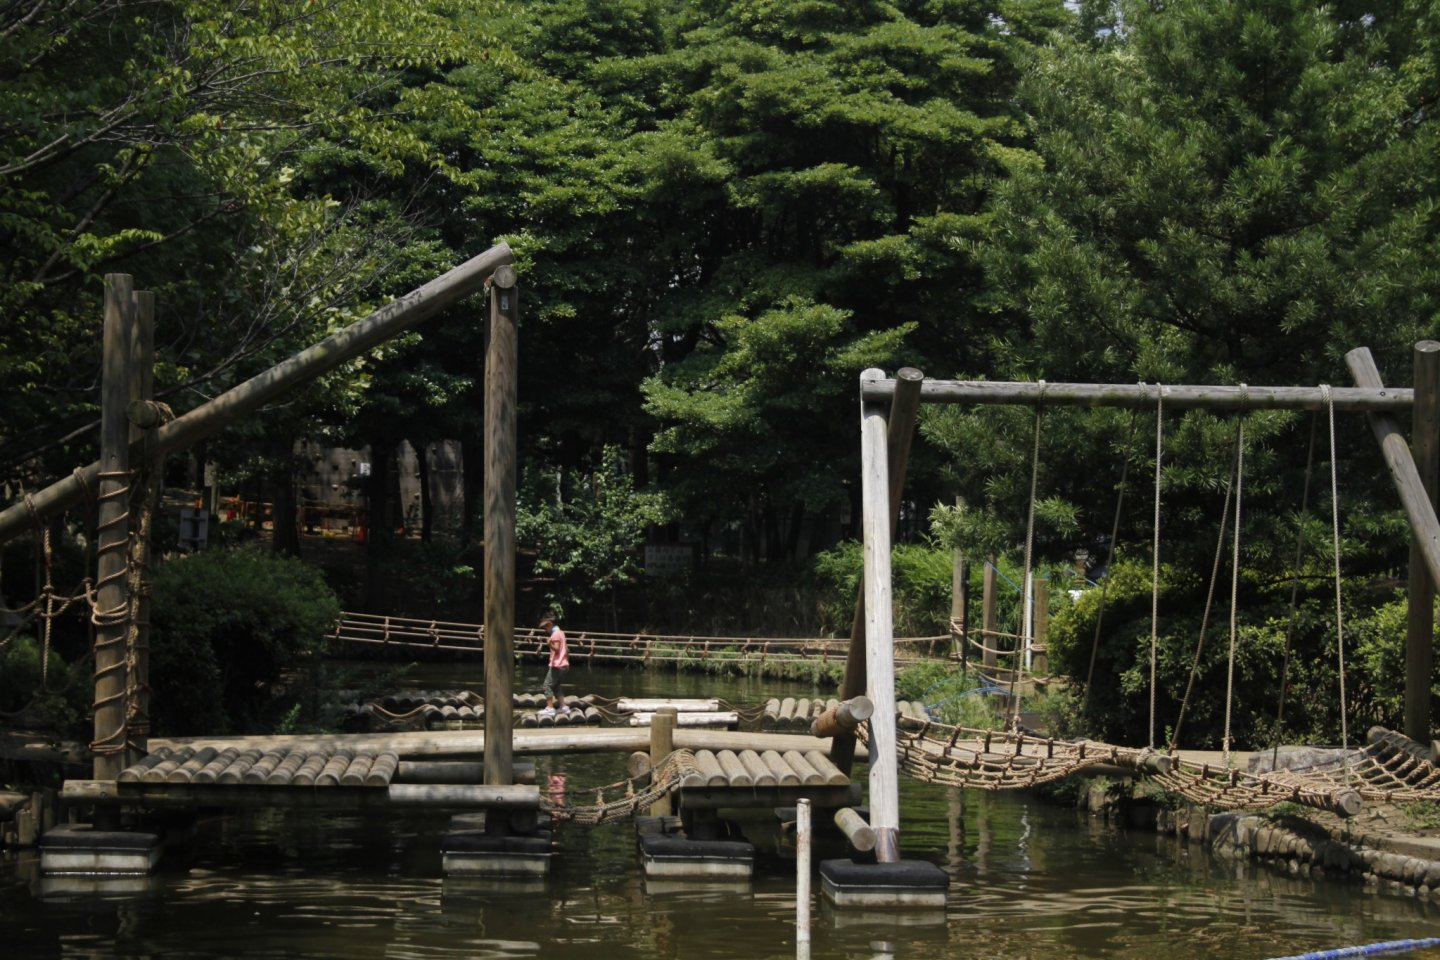 This adventure park is large and great for children.